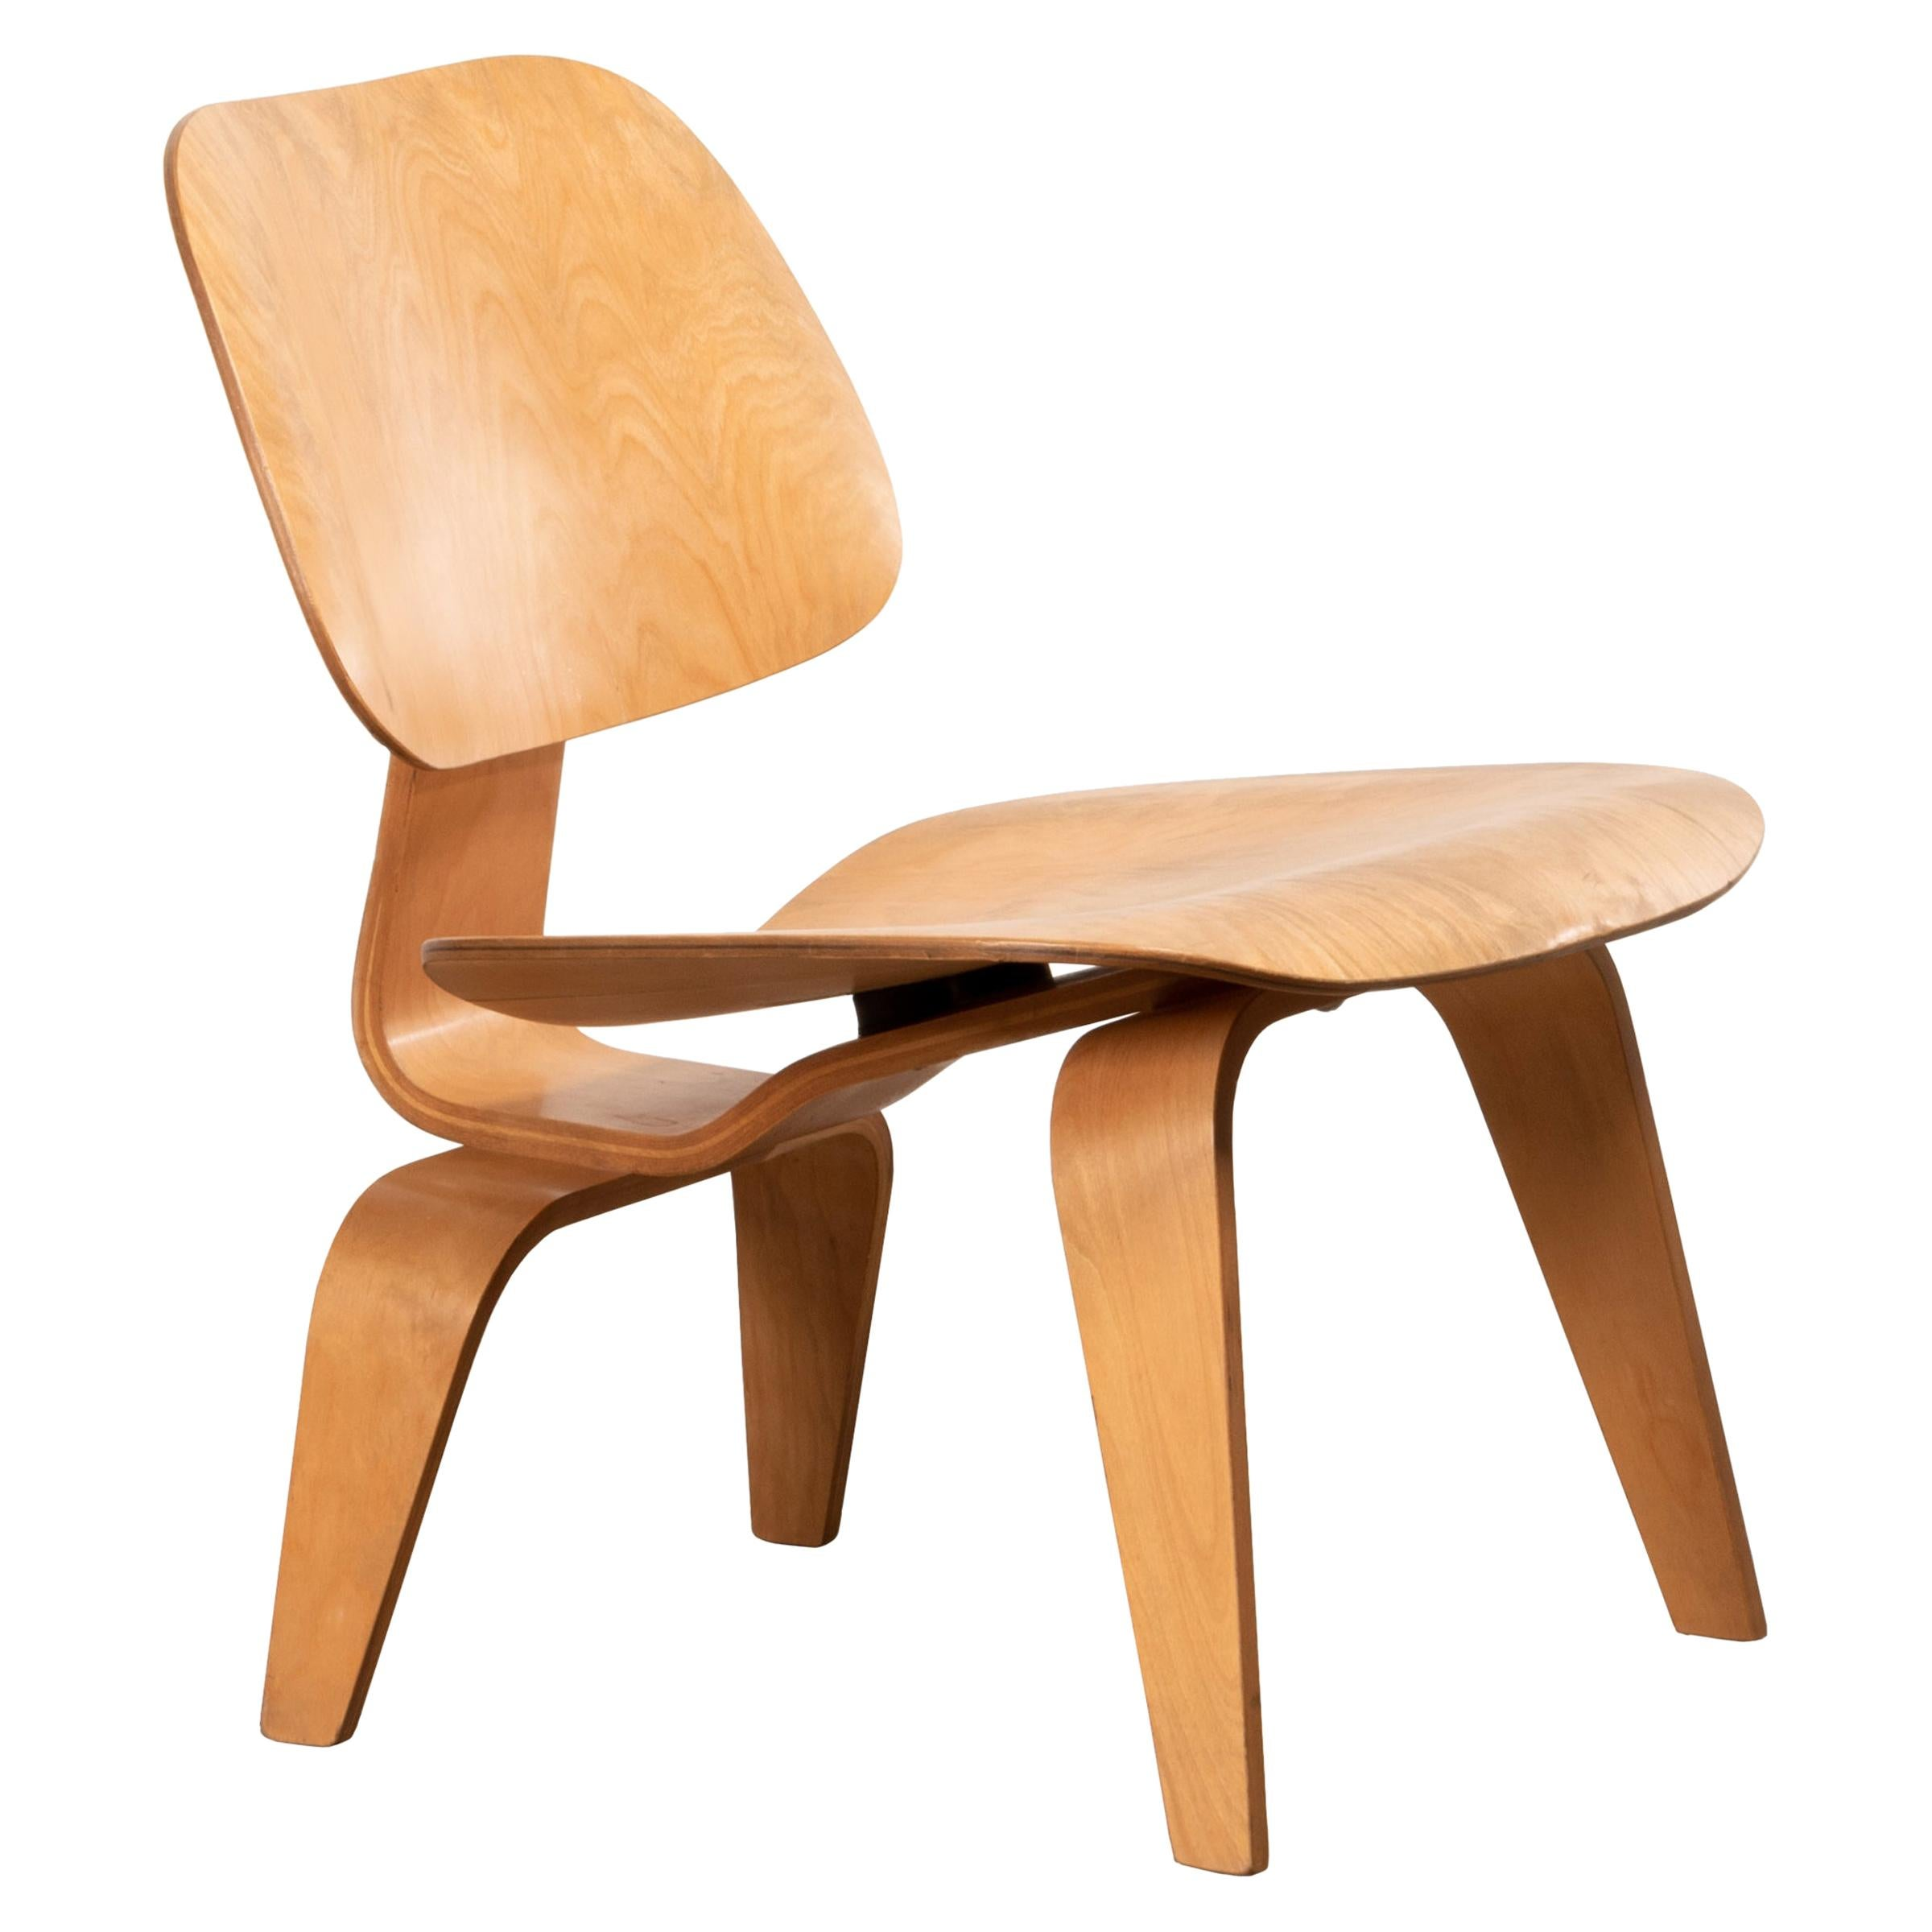 Charles & Ray Eames Early LCW Maple Lounge Chair for Herman Miller, 1952